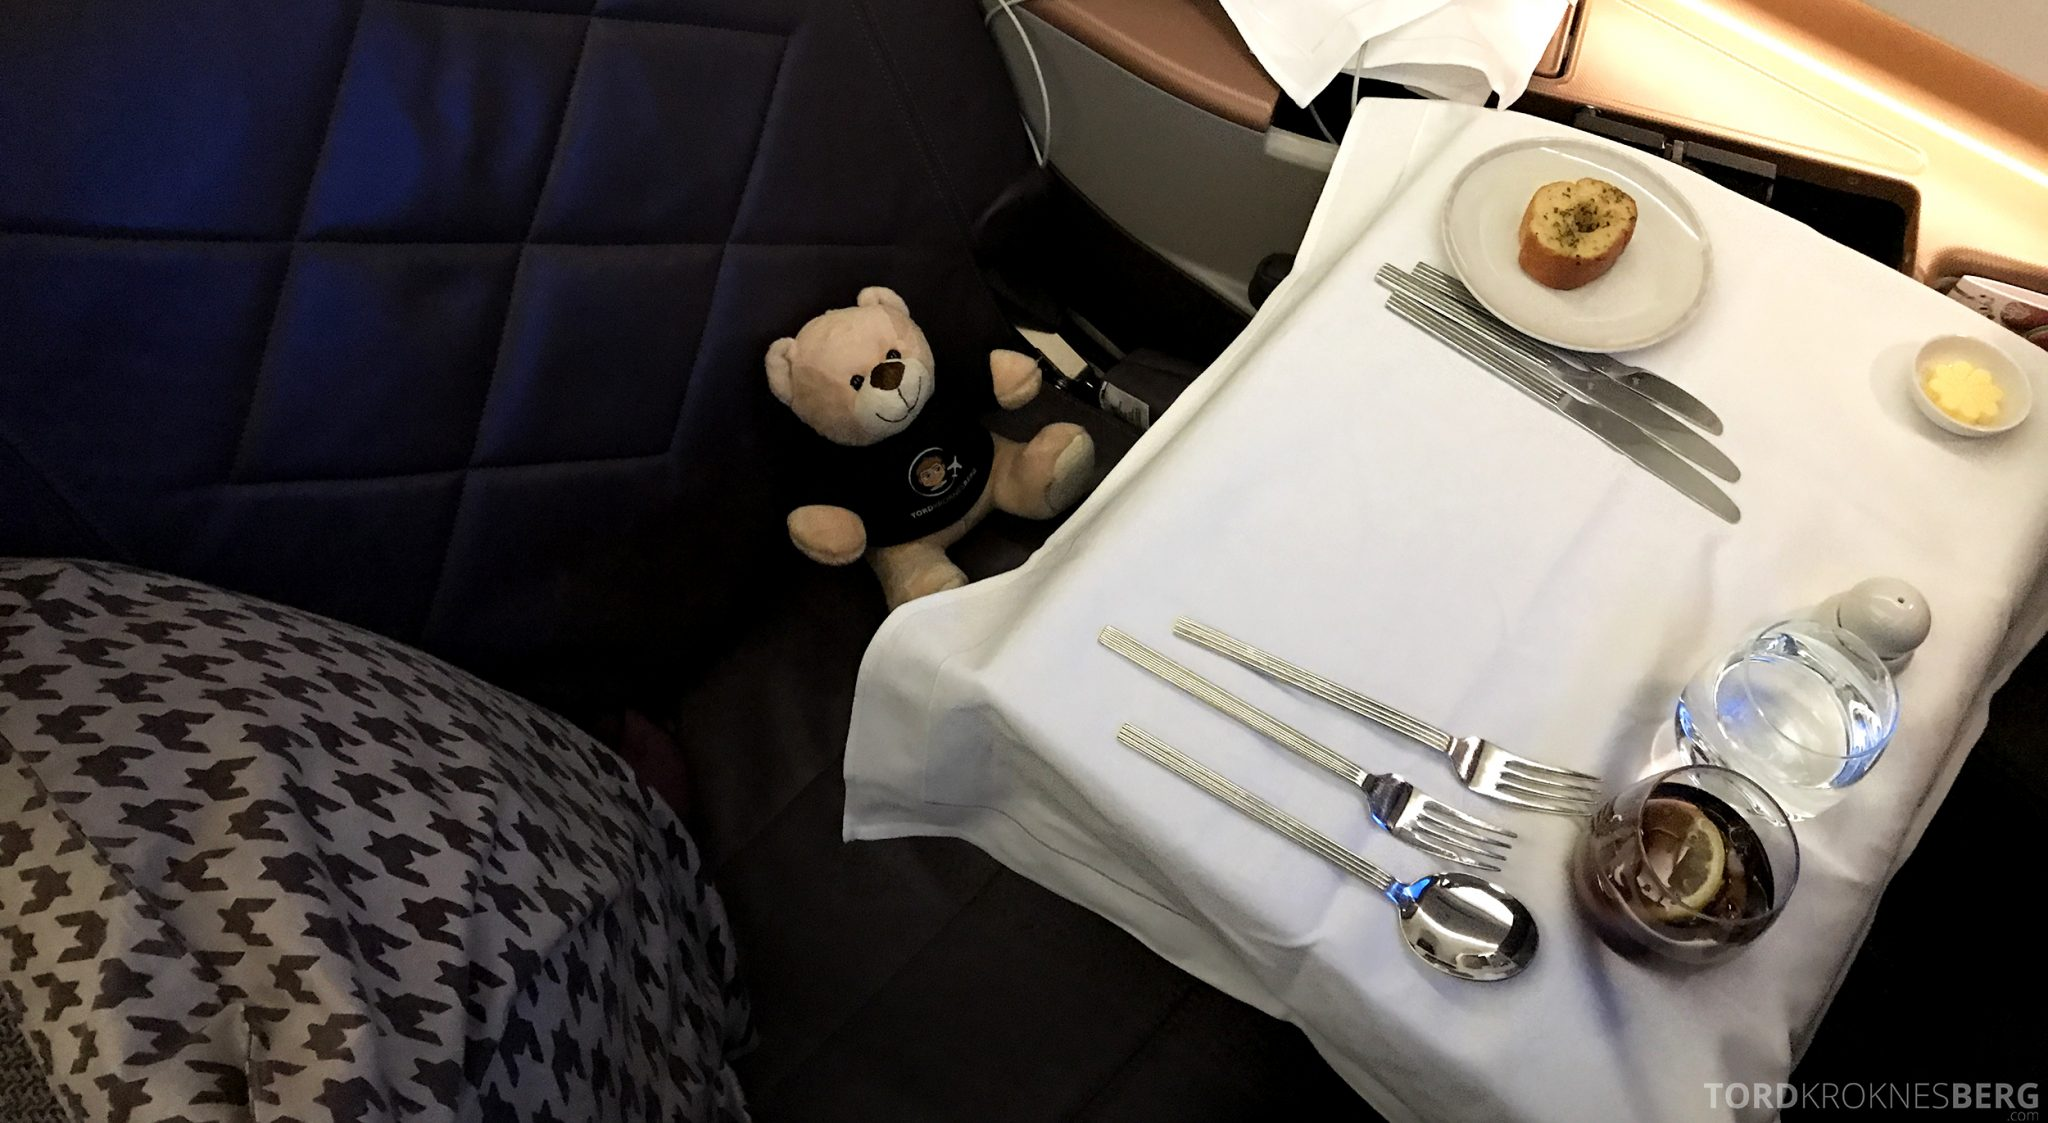 Singapore Airlines Business Class Moskva Stockholm reisefølget hovedrett